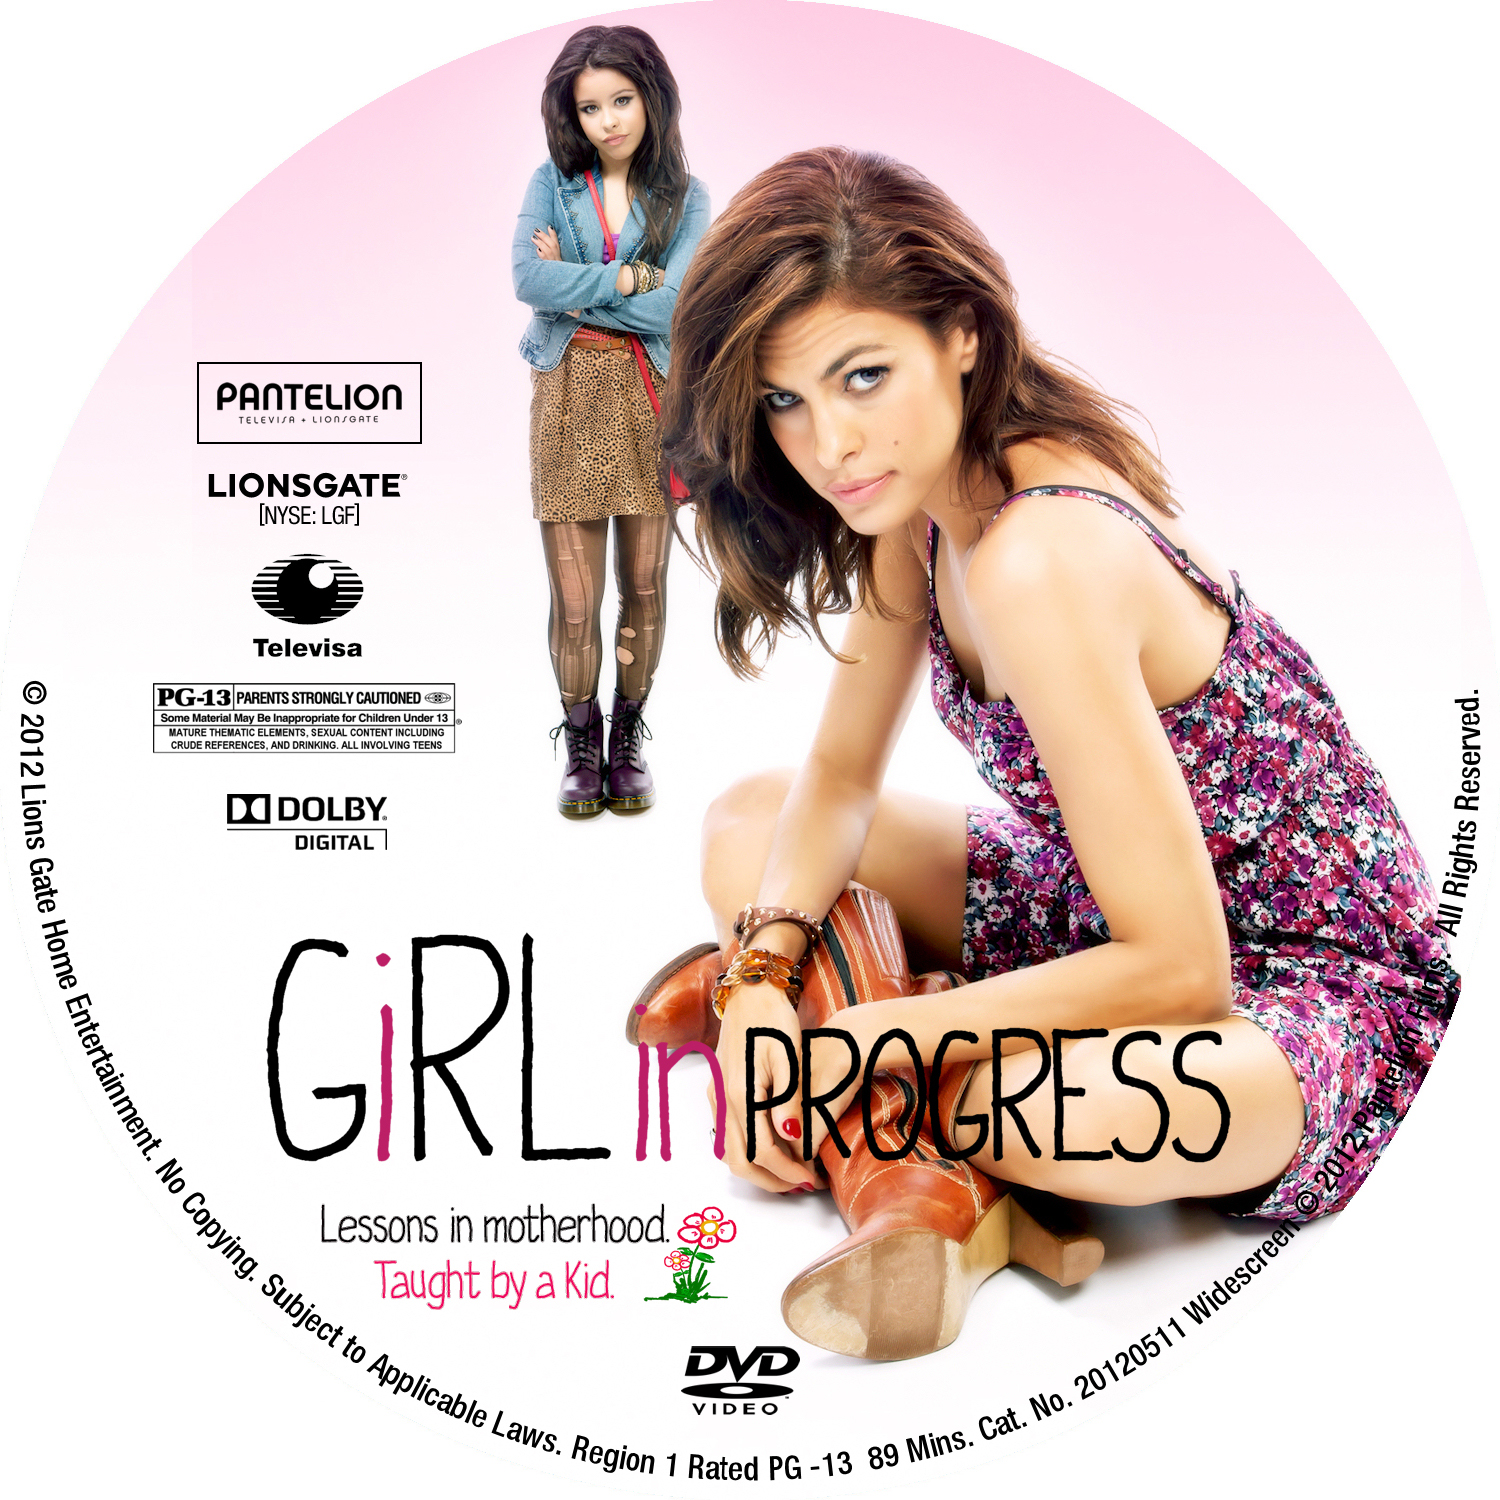 Think, that girl in progress movie